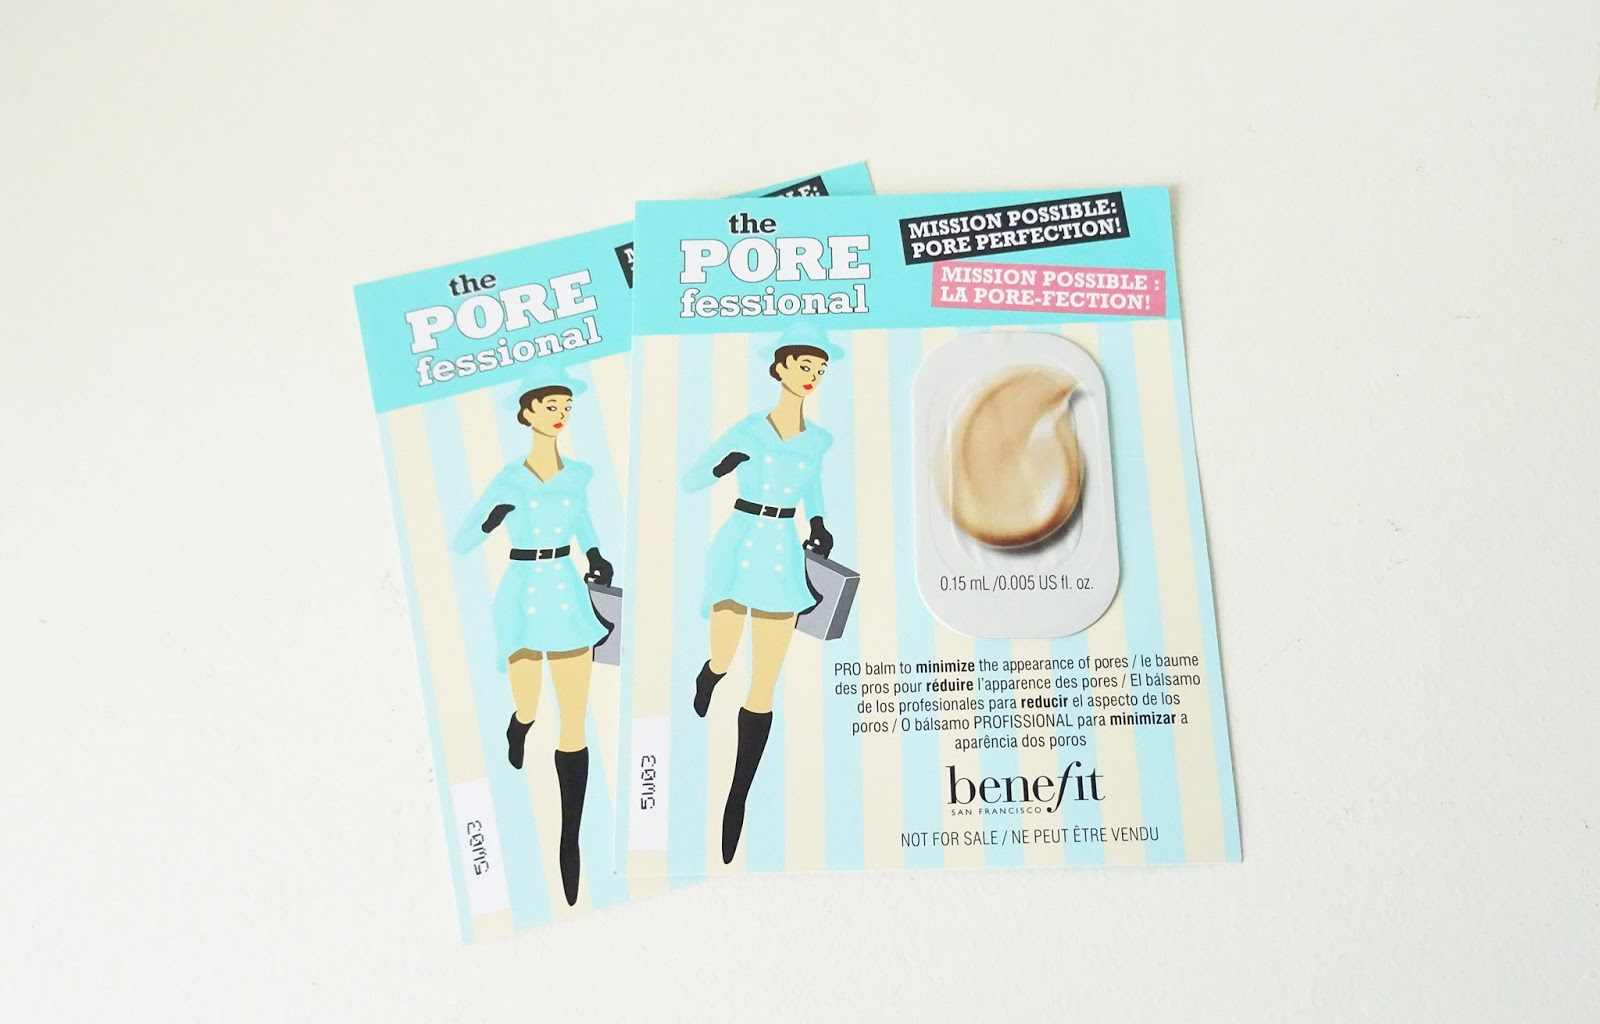 La base POREfessional Benefit